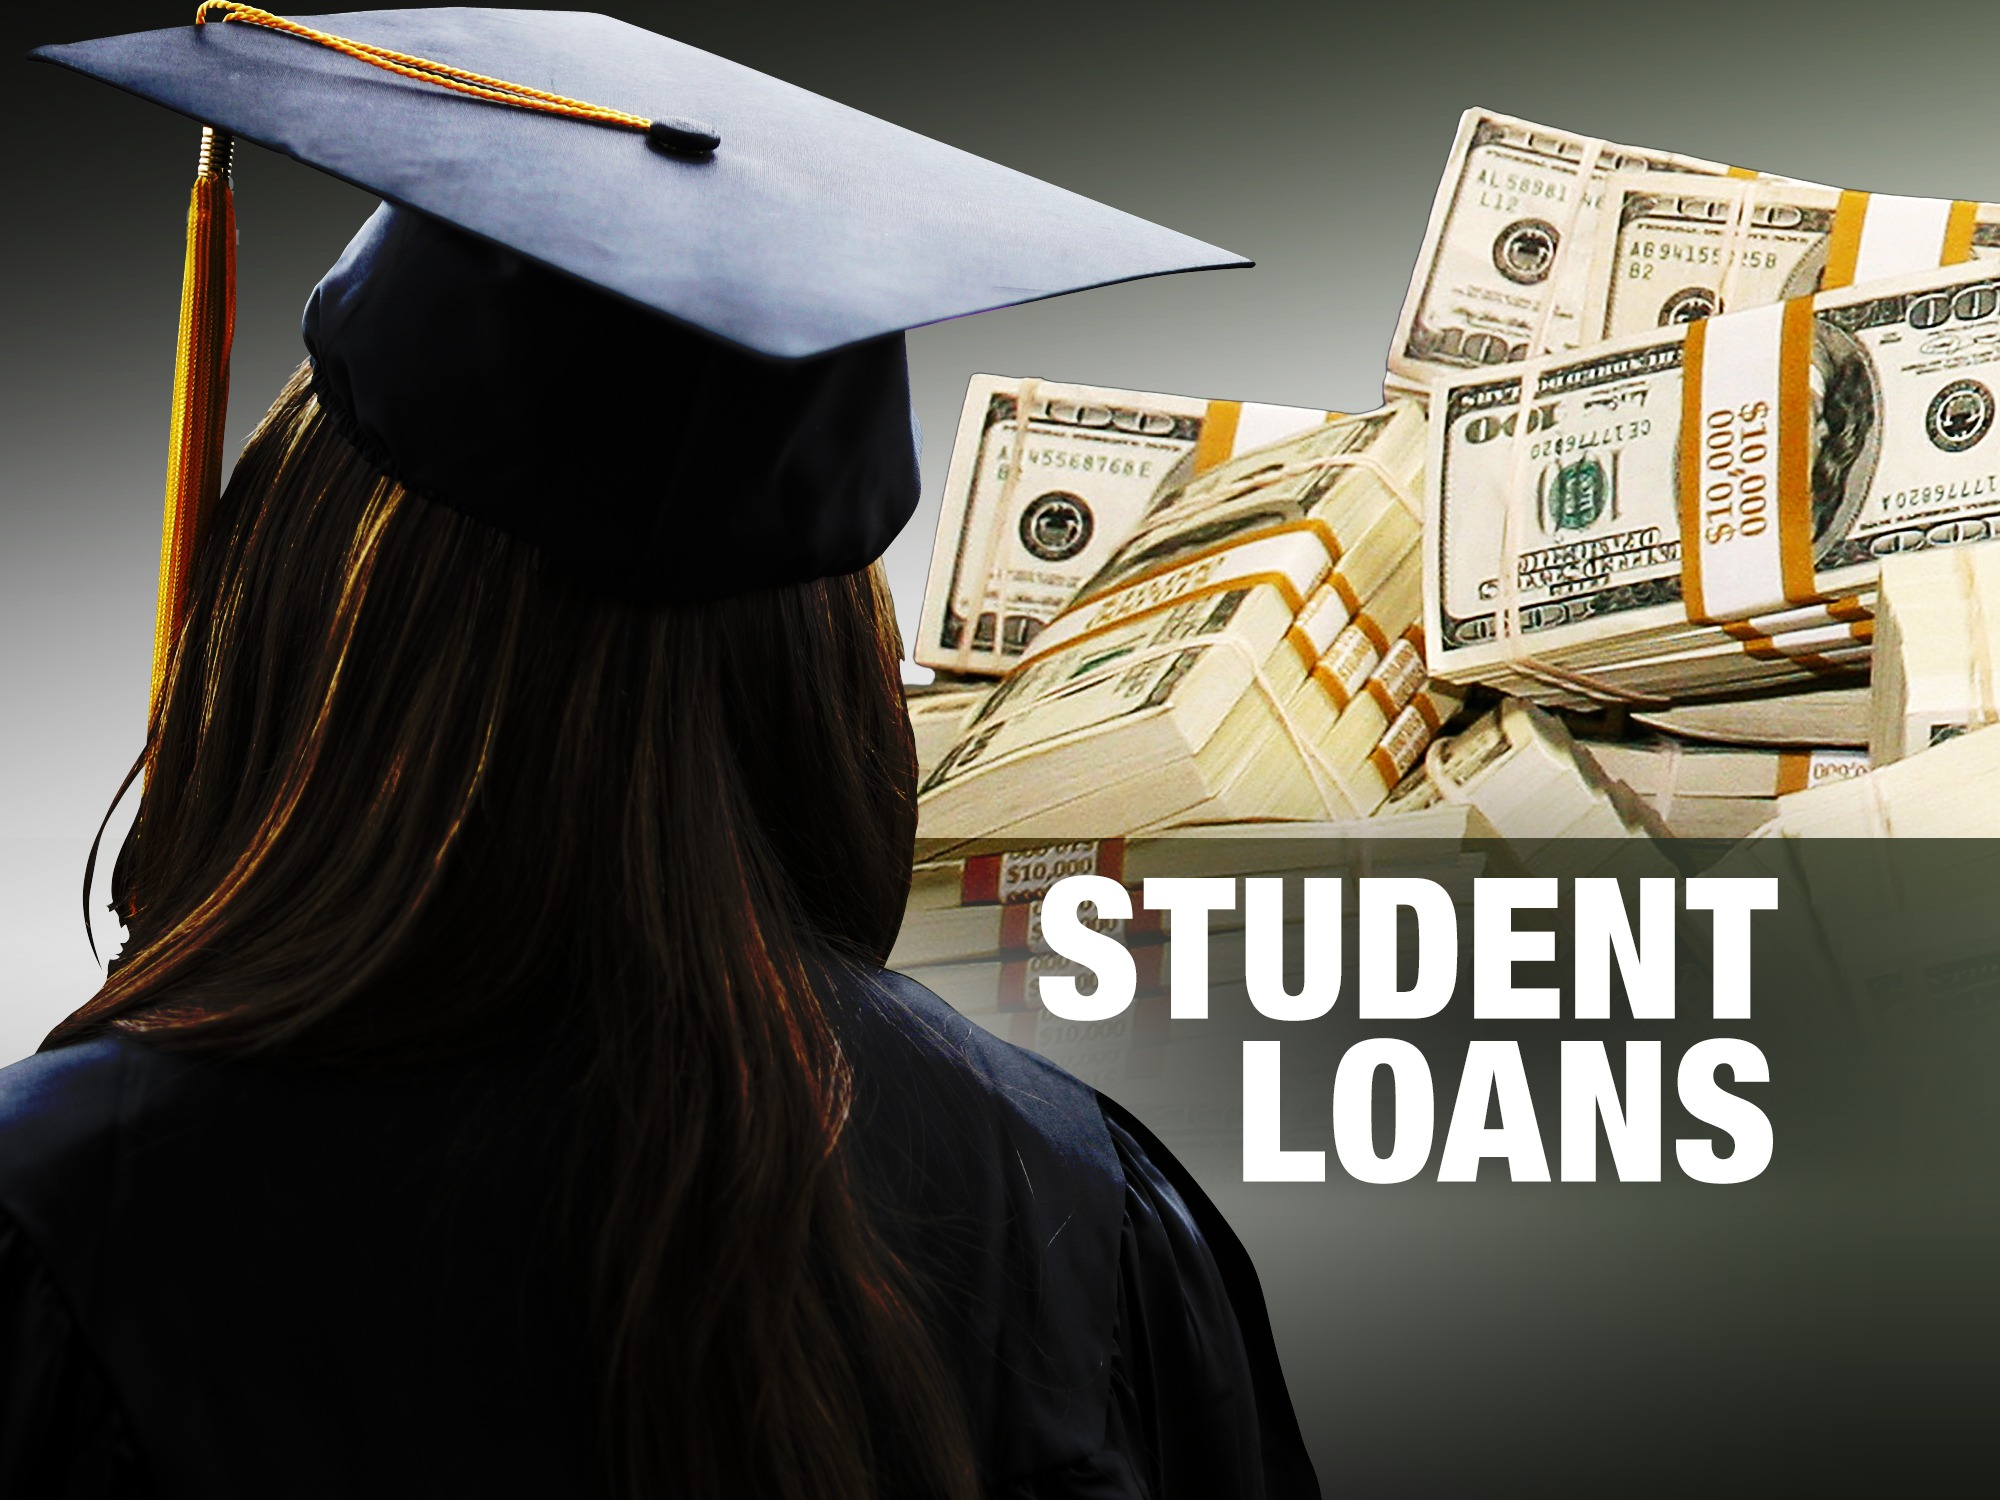 Financial Matters: Trends In Student Loans